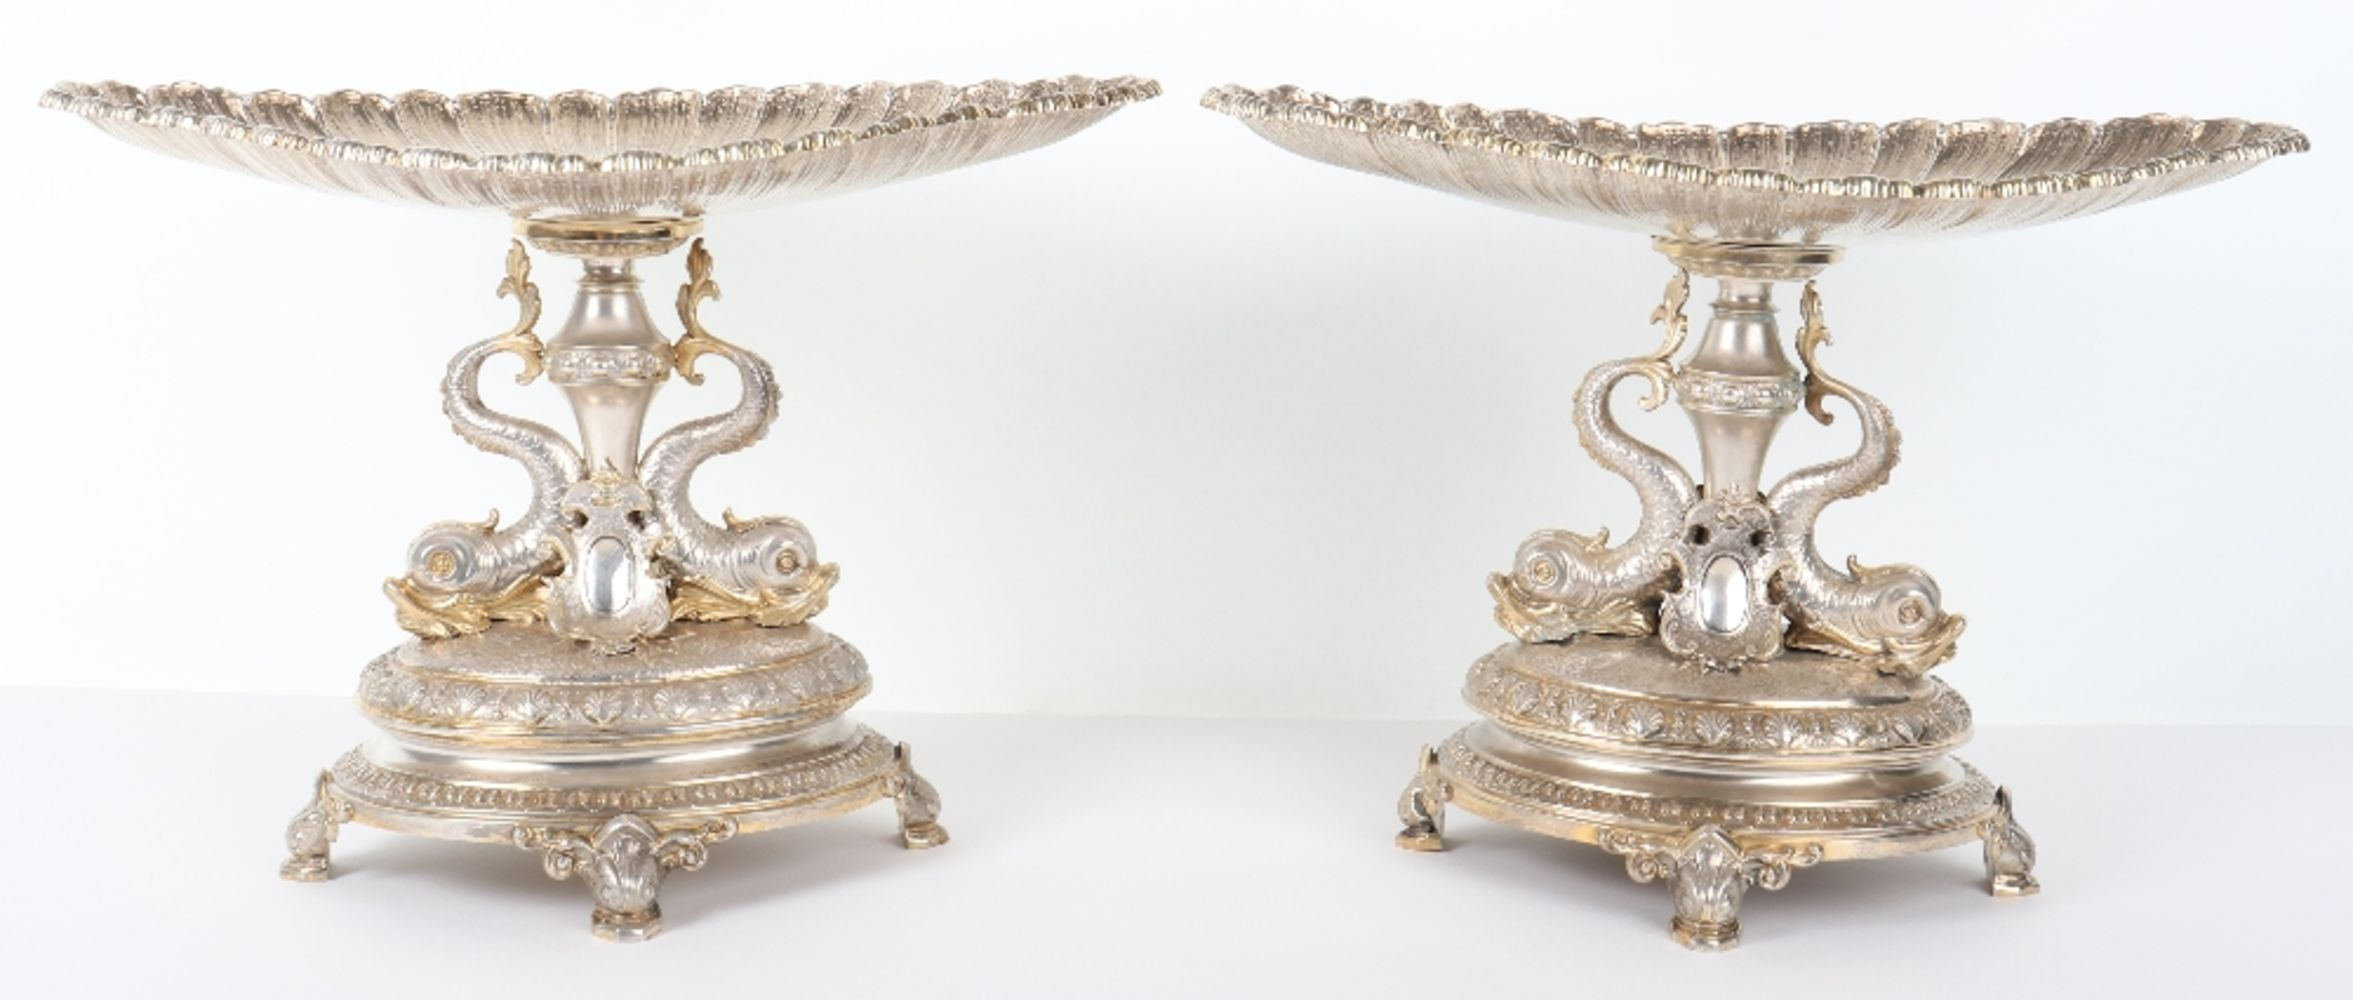 Timed Auction of Antique & Collectible Silver